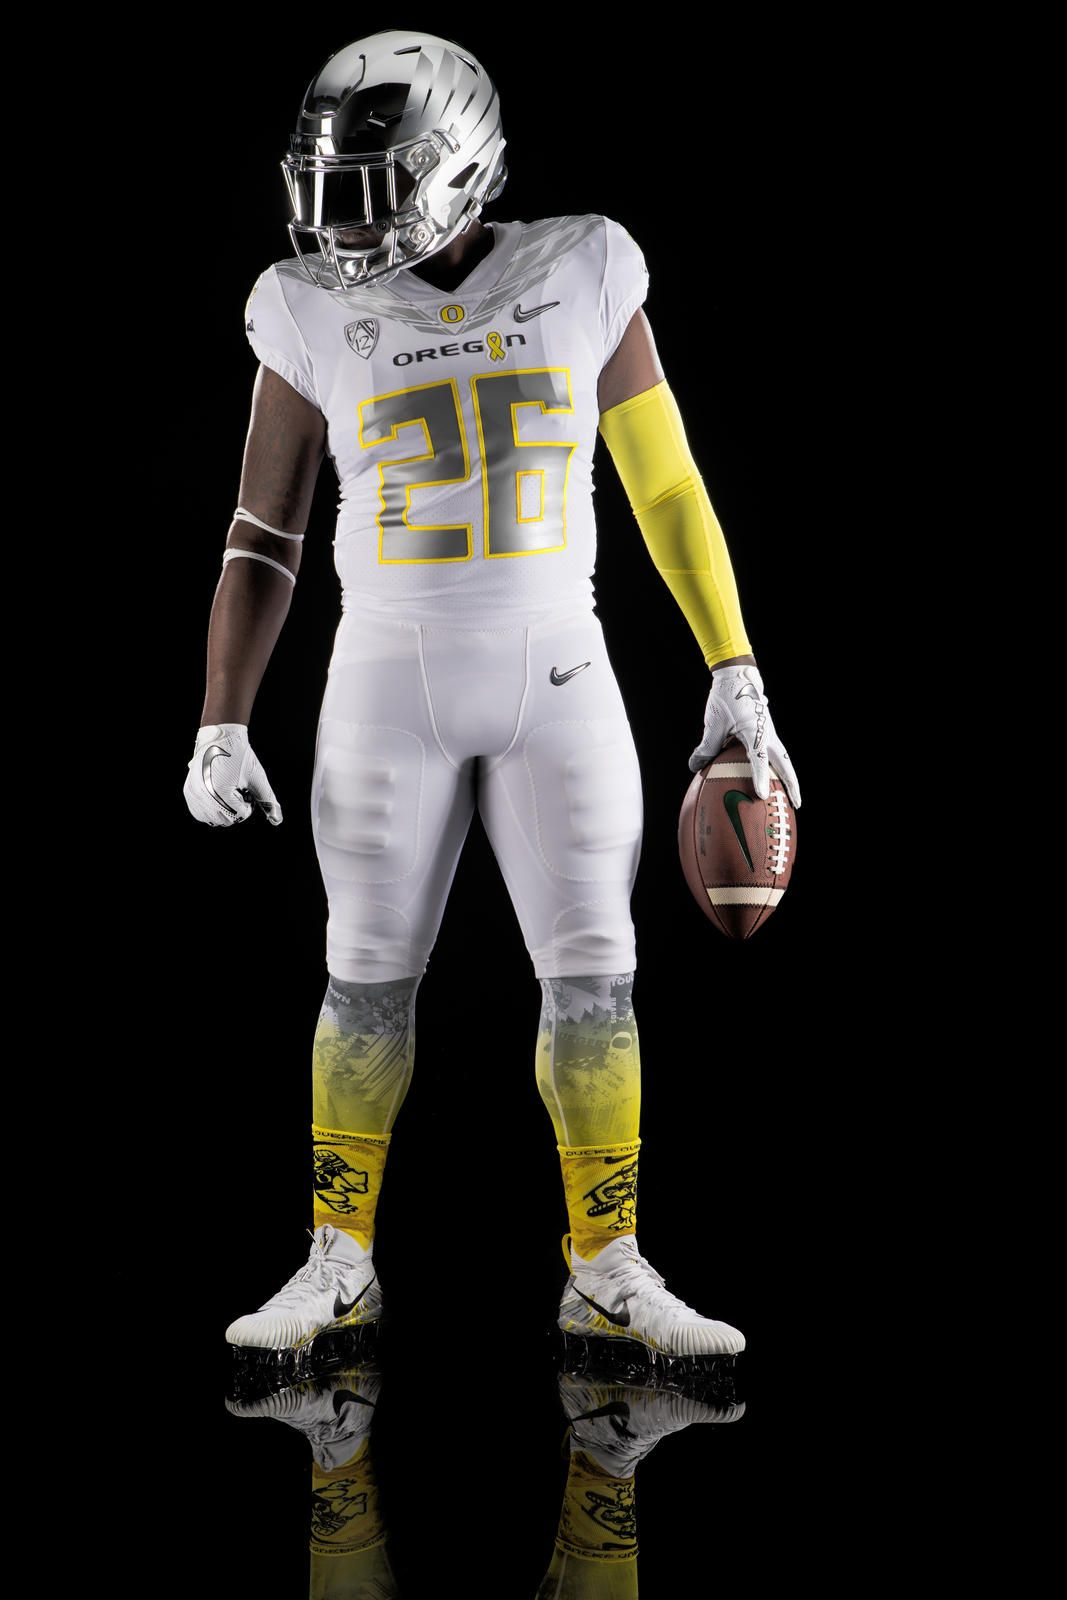 A First Look At Oregon S Most Important Uniform College Football Uniforms Football Uniforms Oregon Football